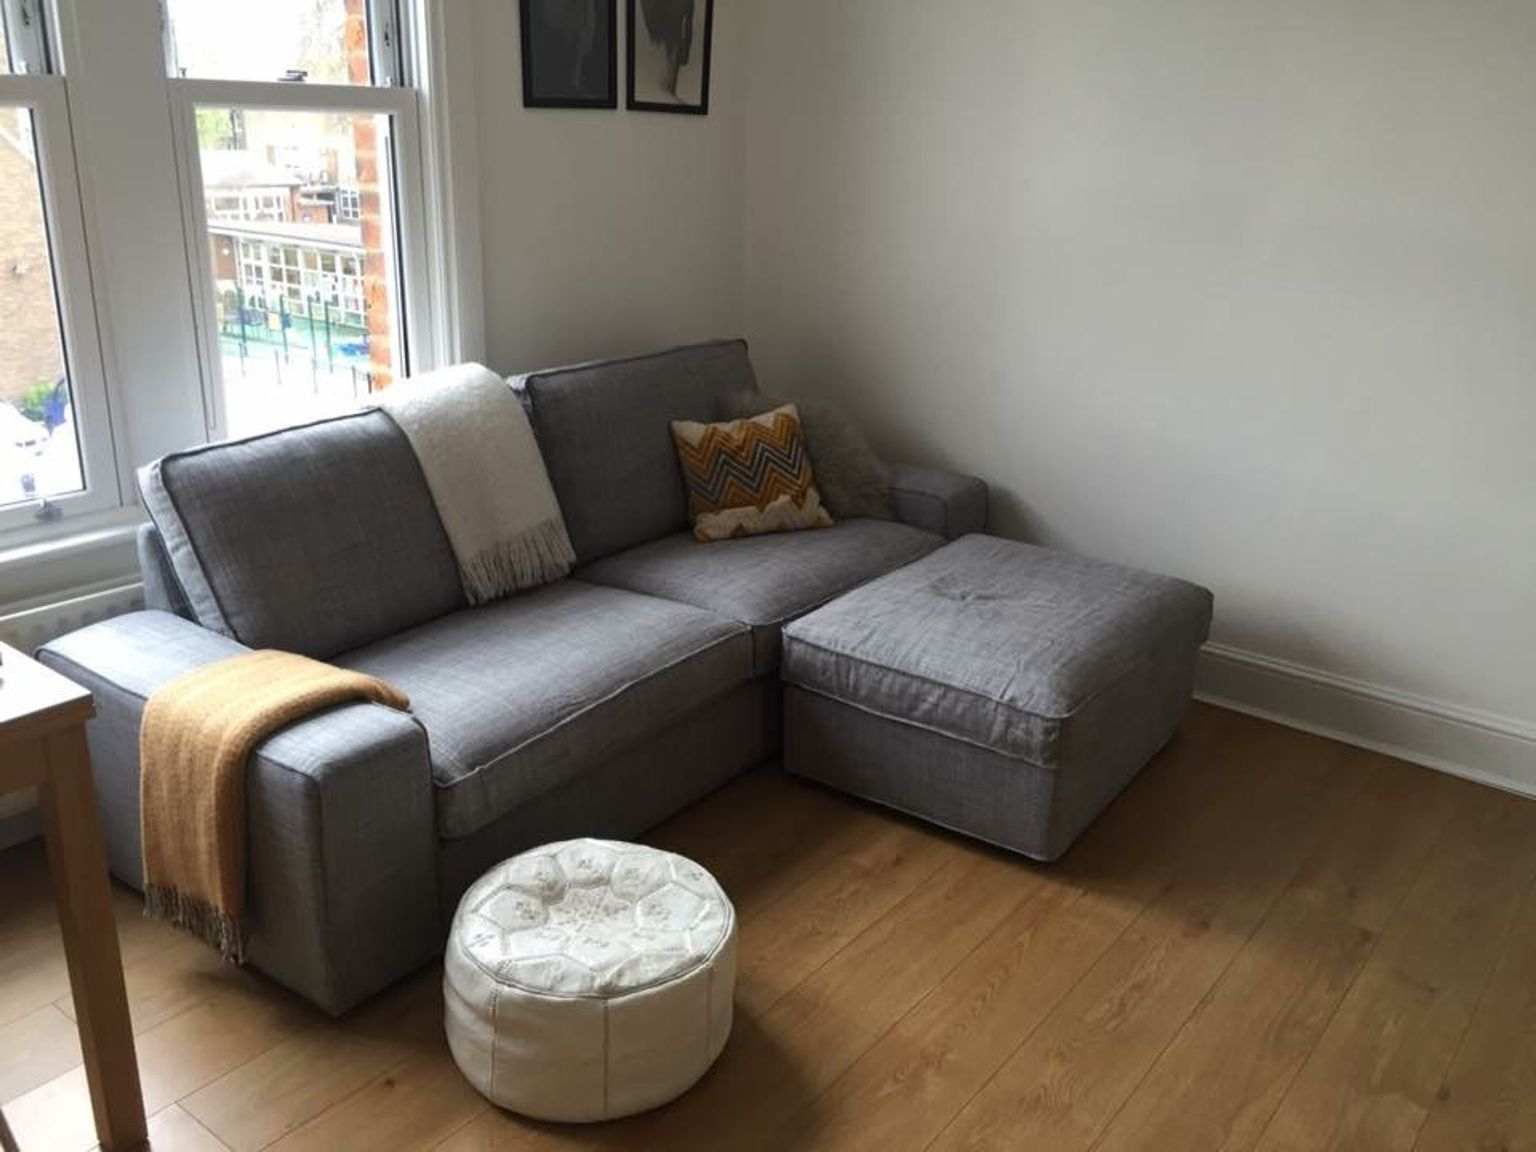 Sofa Kivik Ikea Dwdk Used Ikea 3 Seater Grey Kivik sofa Footstool In N5 London for